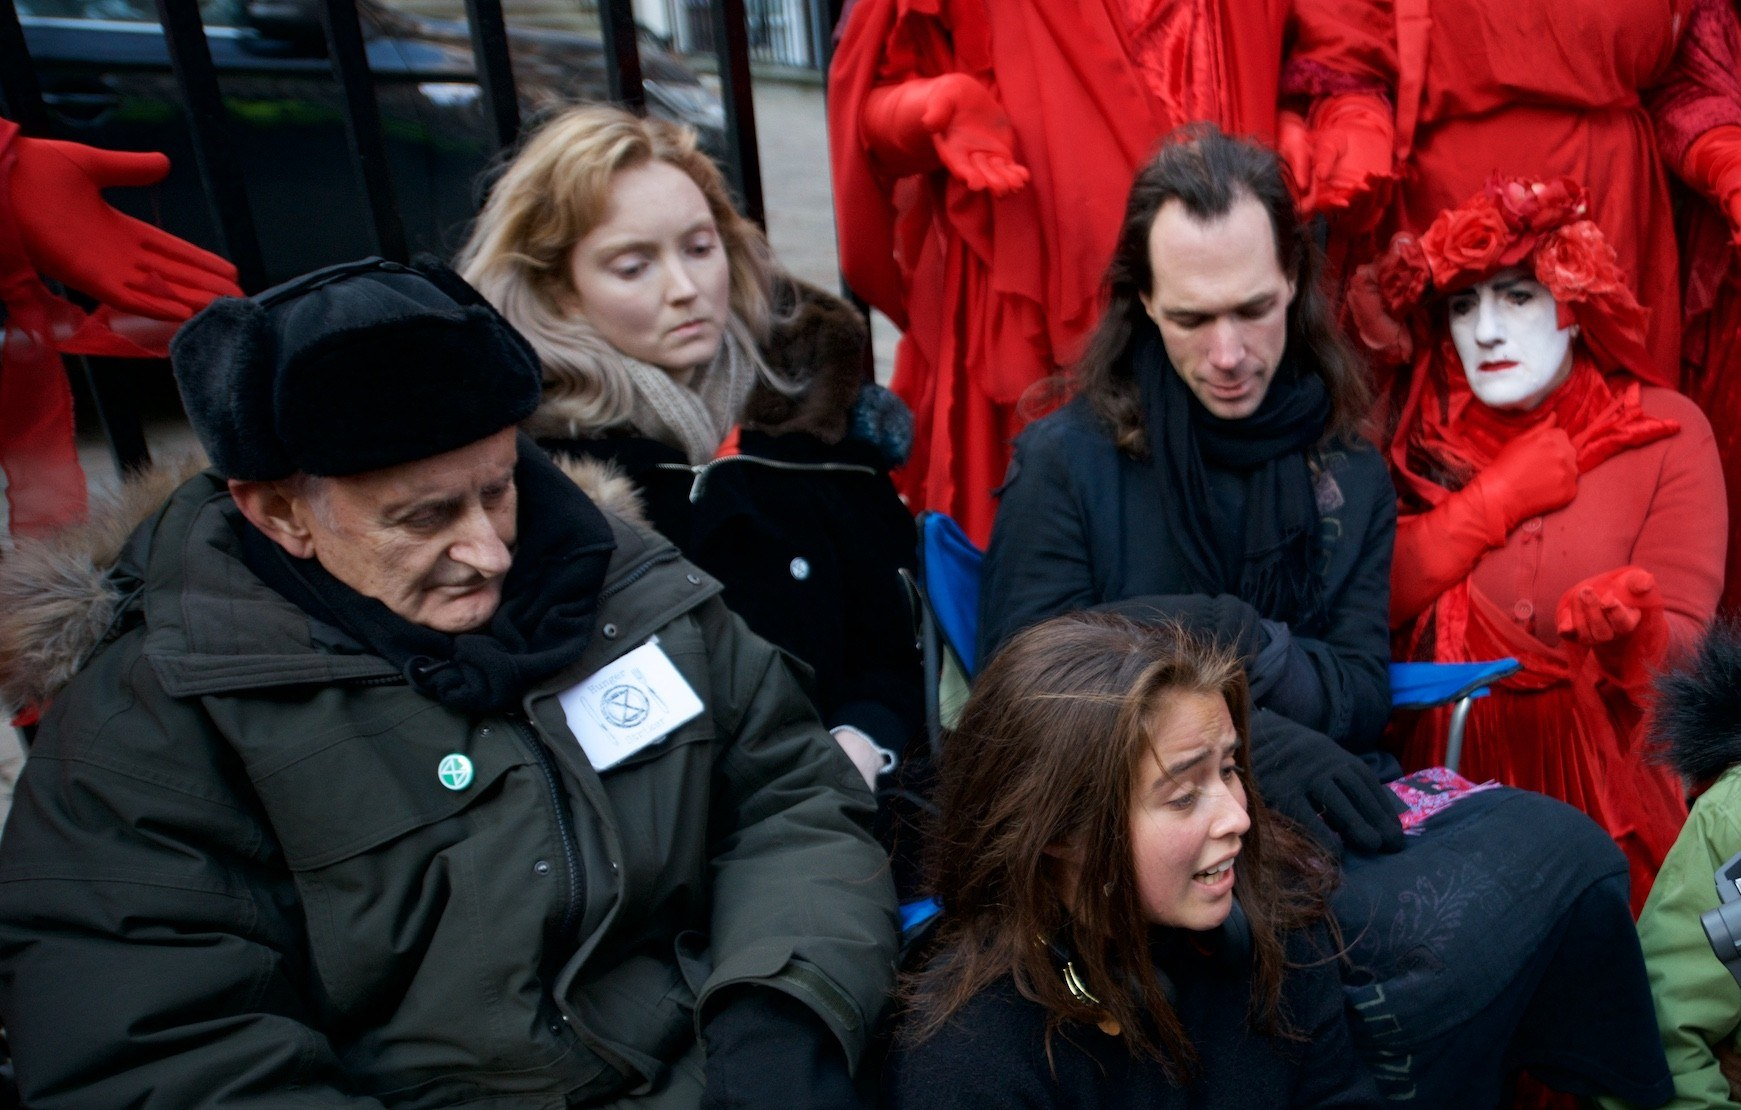 Lily Cole supports hunger strikes for climate action